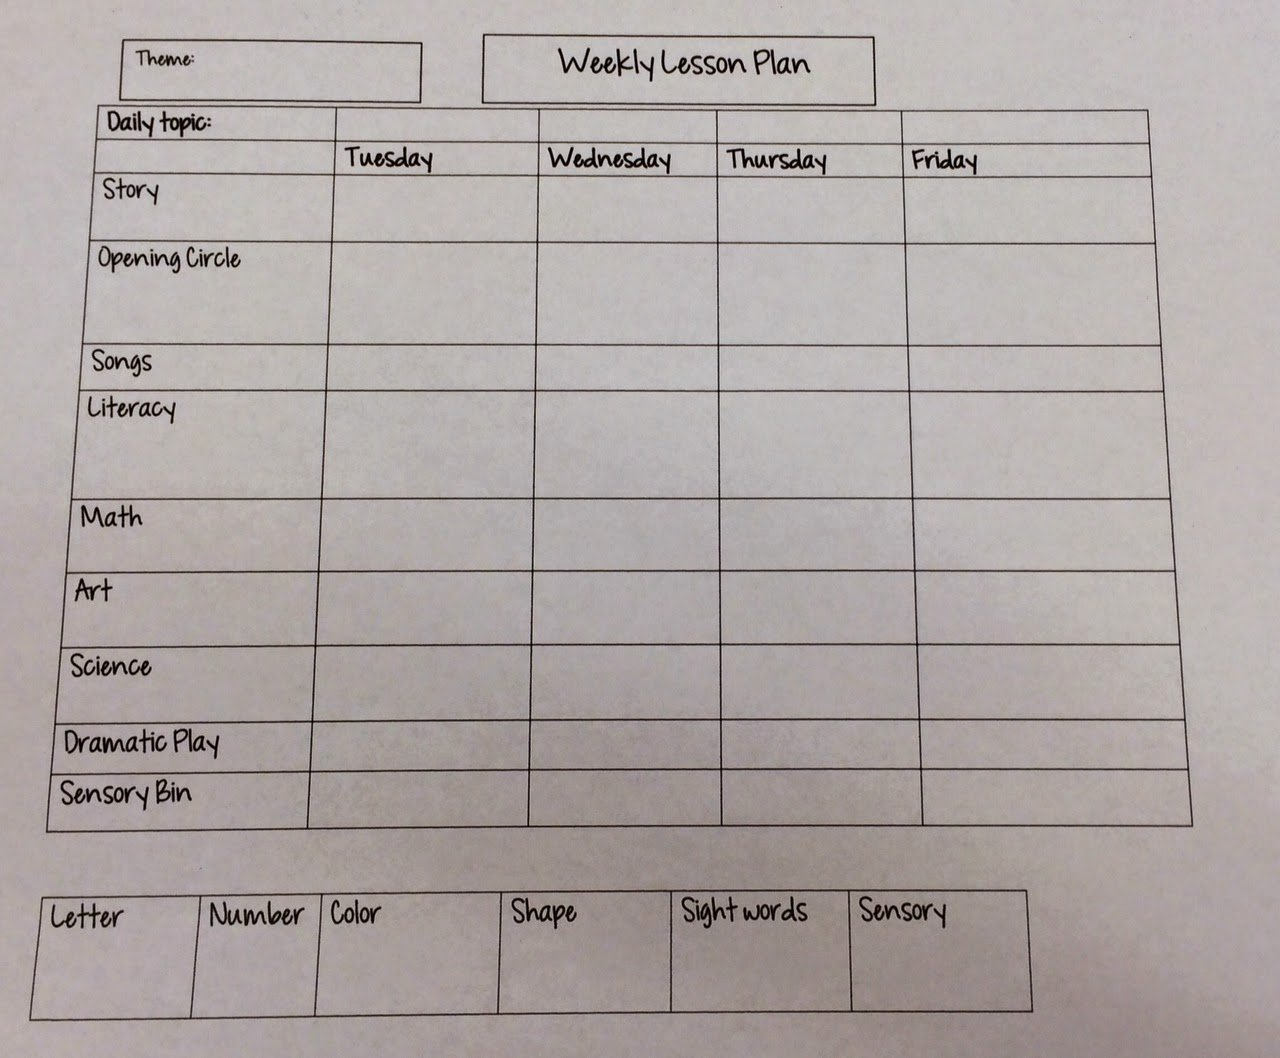 Week Lesson Plan Template Elegant Miss Nicole S Preschool Weekly Lesson Plan Template